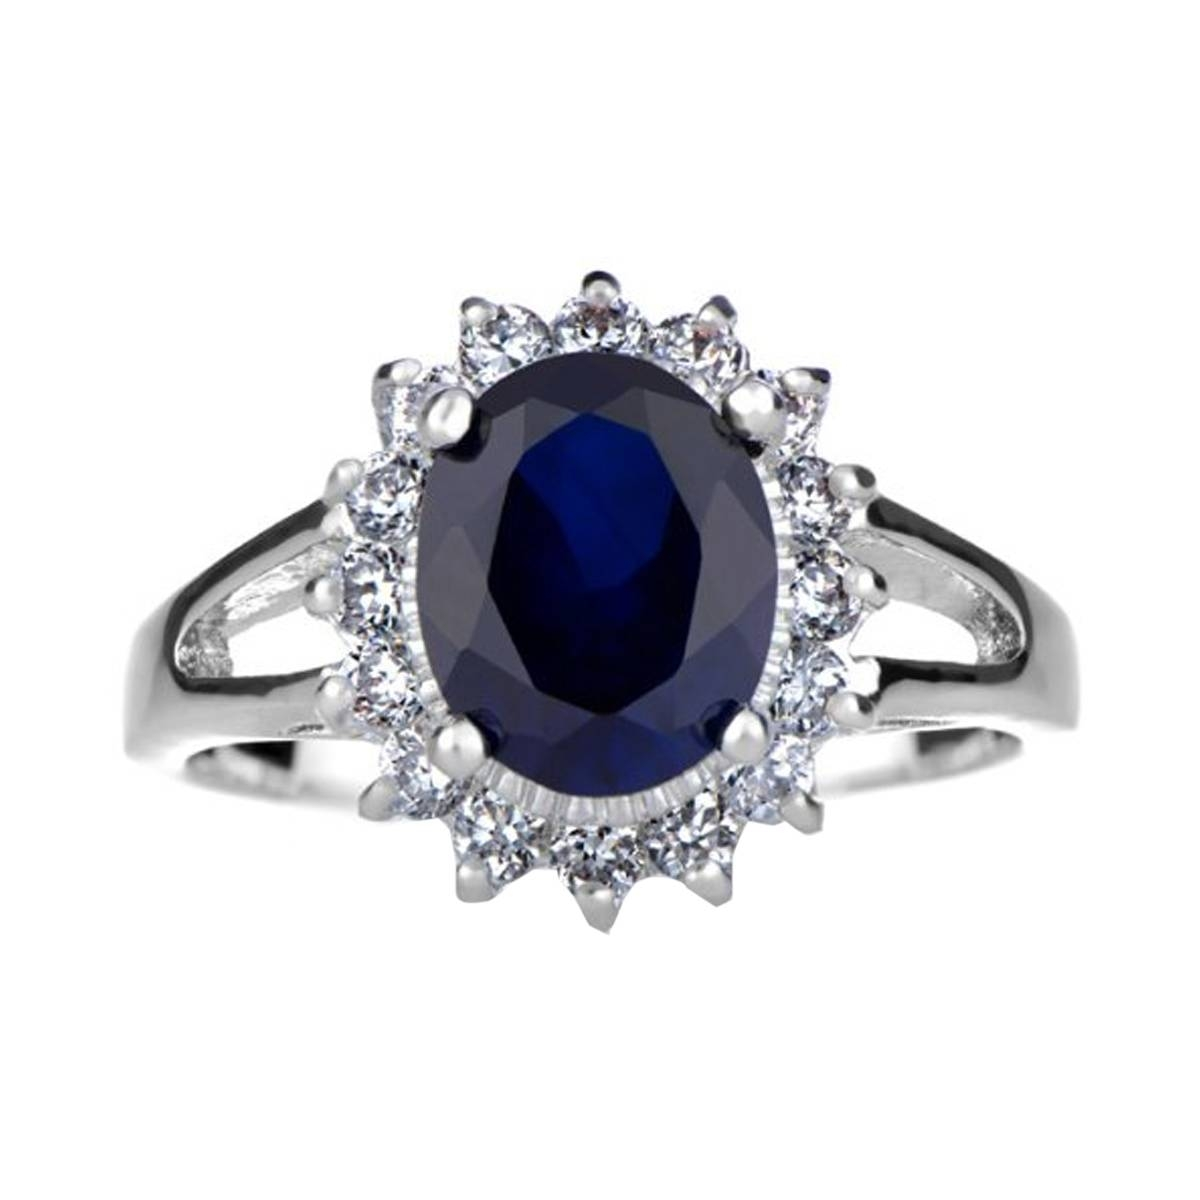 Cz Royal Style Engagement Ring: Silvertone Intended For Wedding Rings Without Nickel (View 5 of 15)